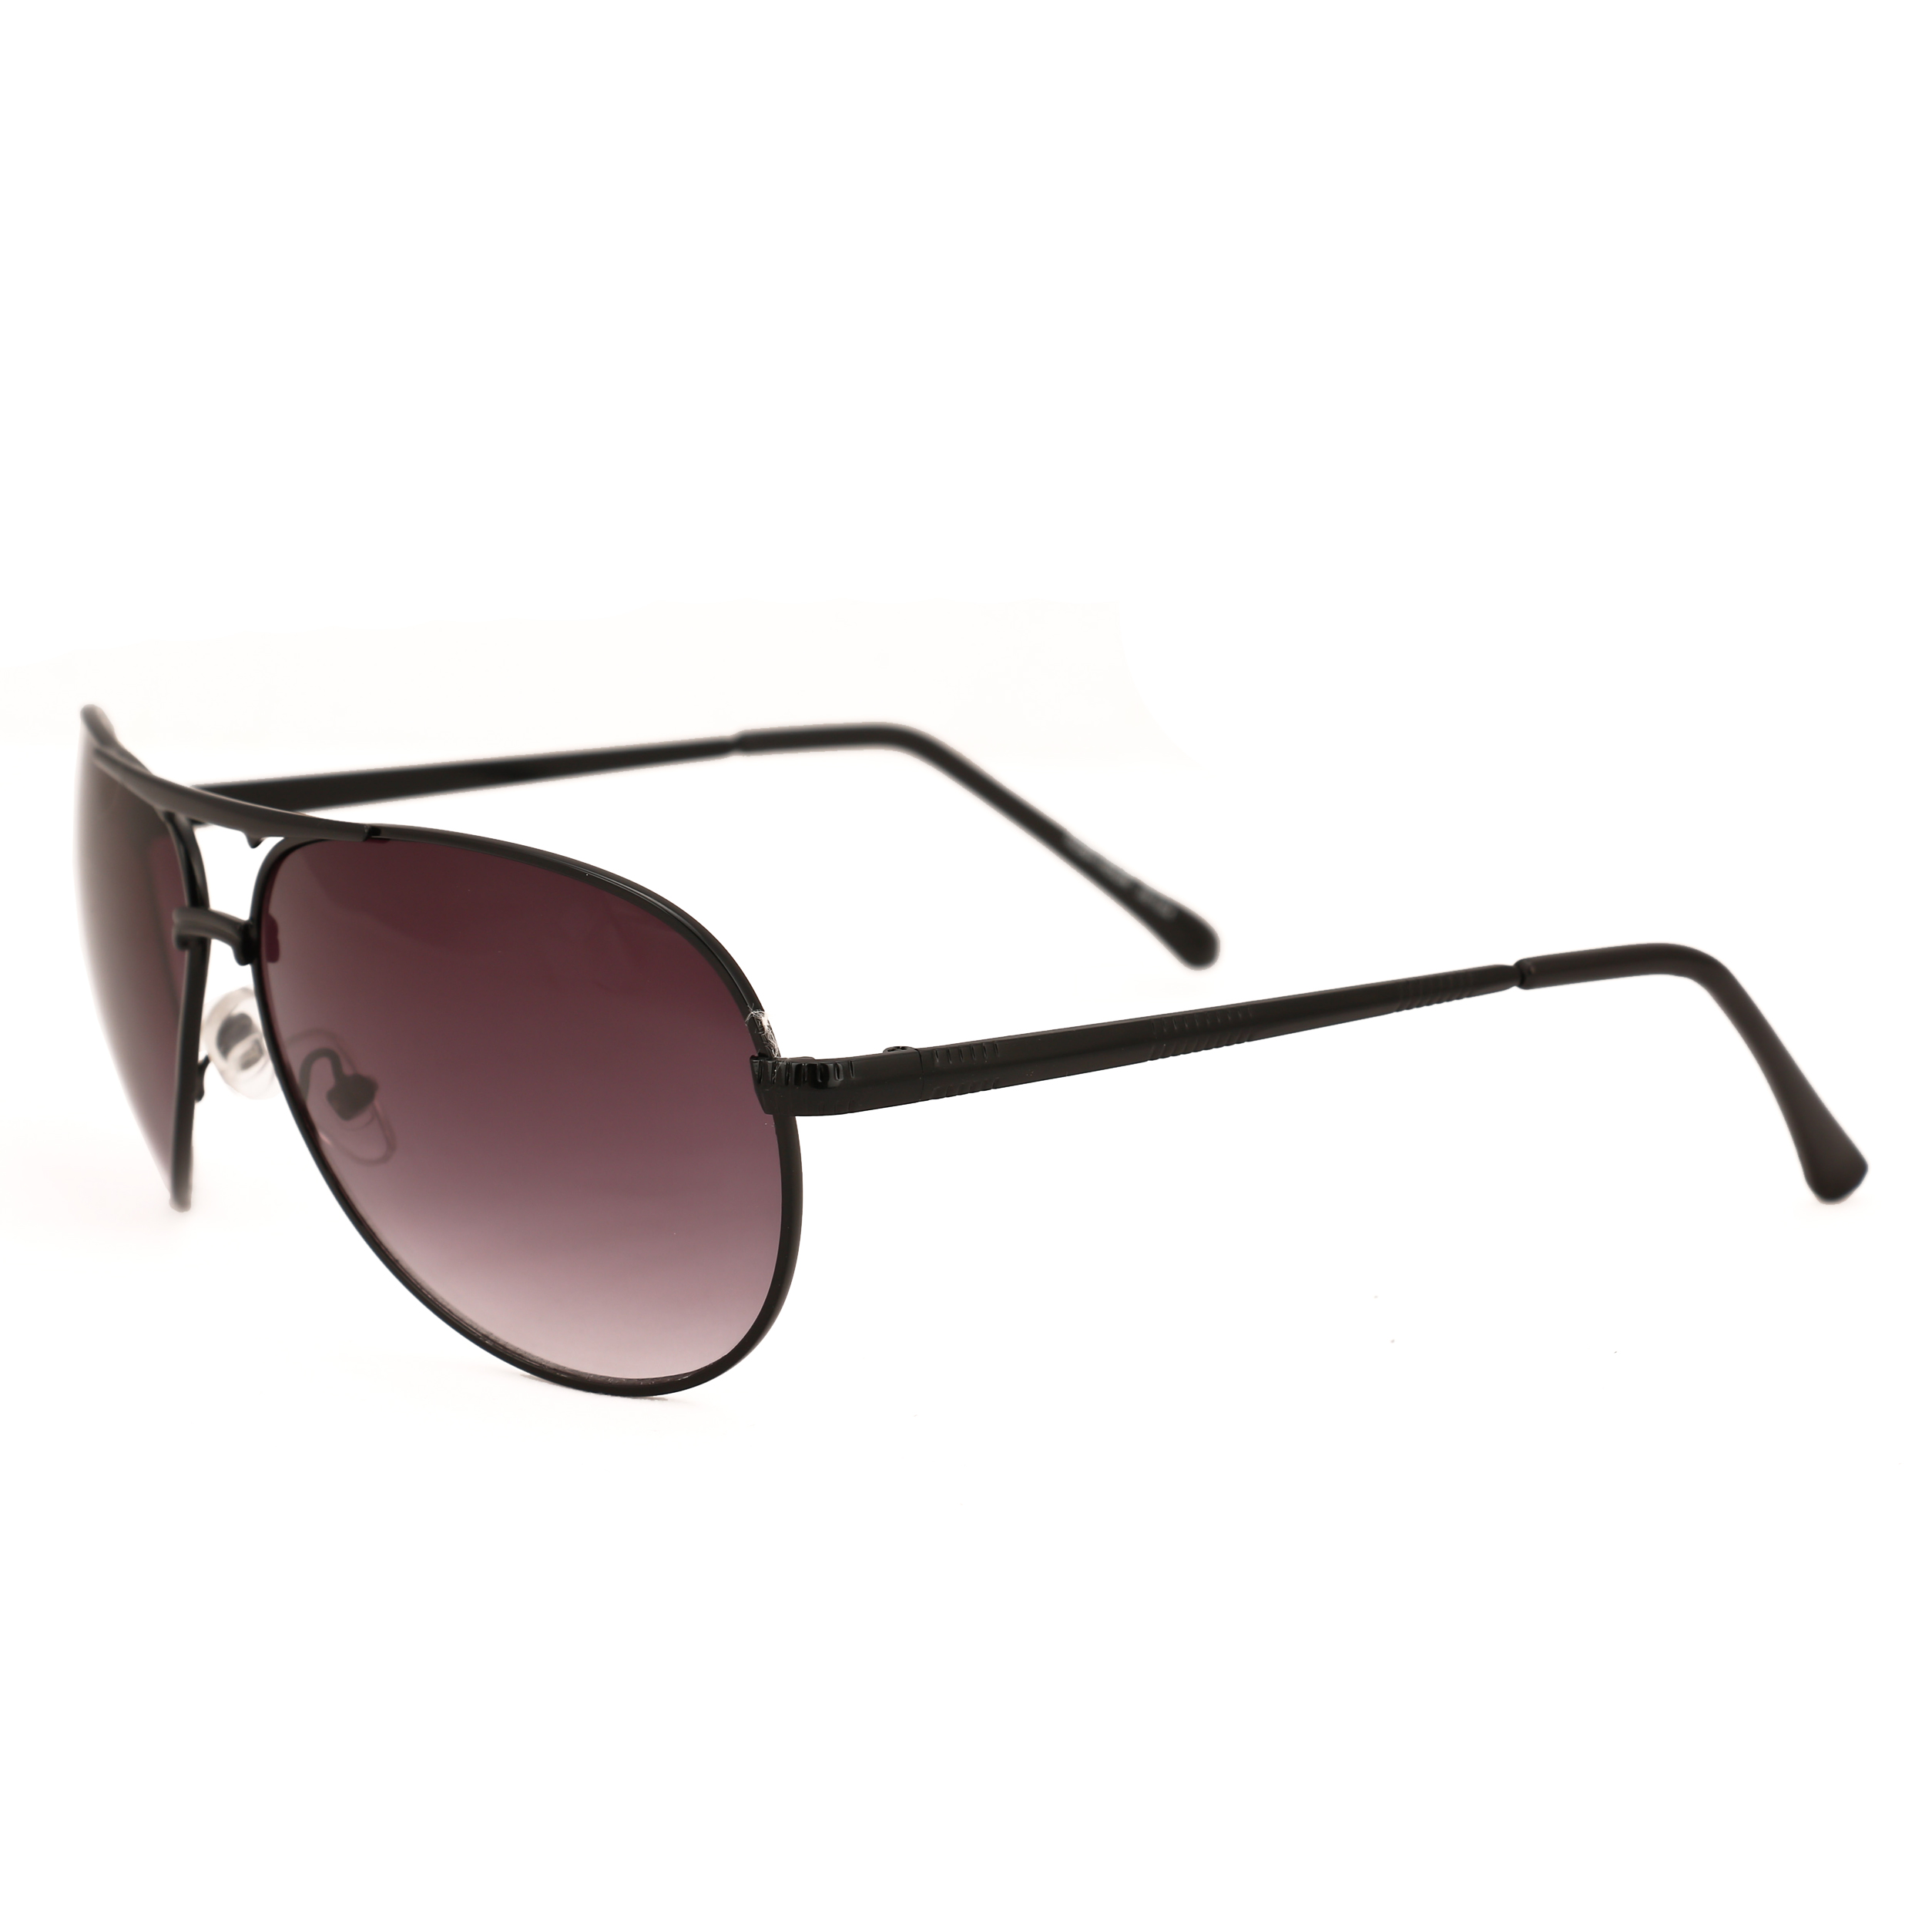 9396c68098b Royal Son UV Protected Sunglasses For Men and Women (WHAT2030